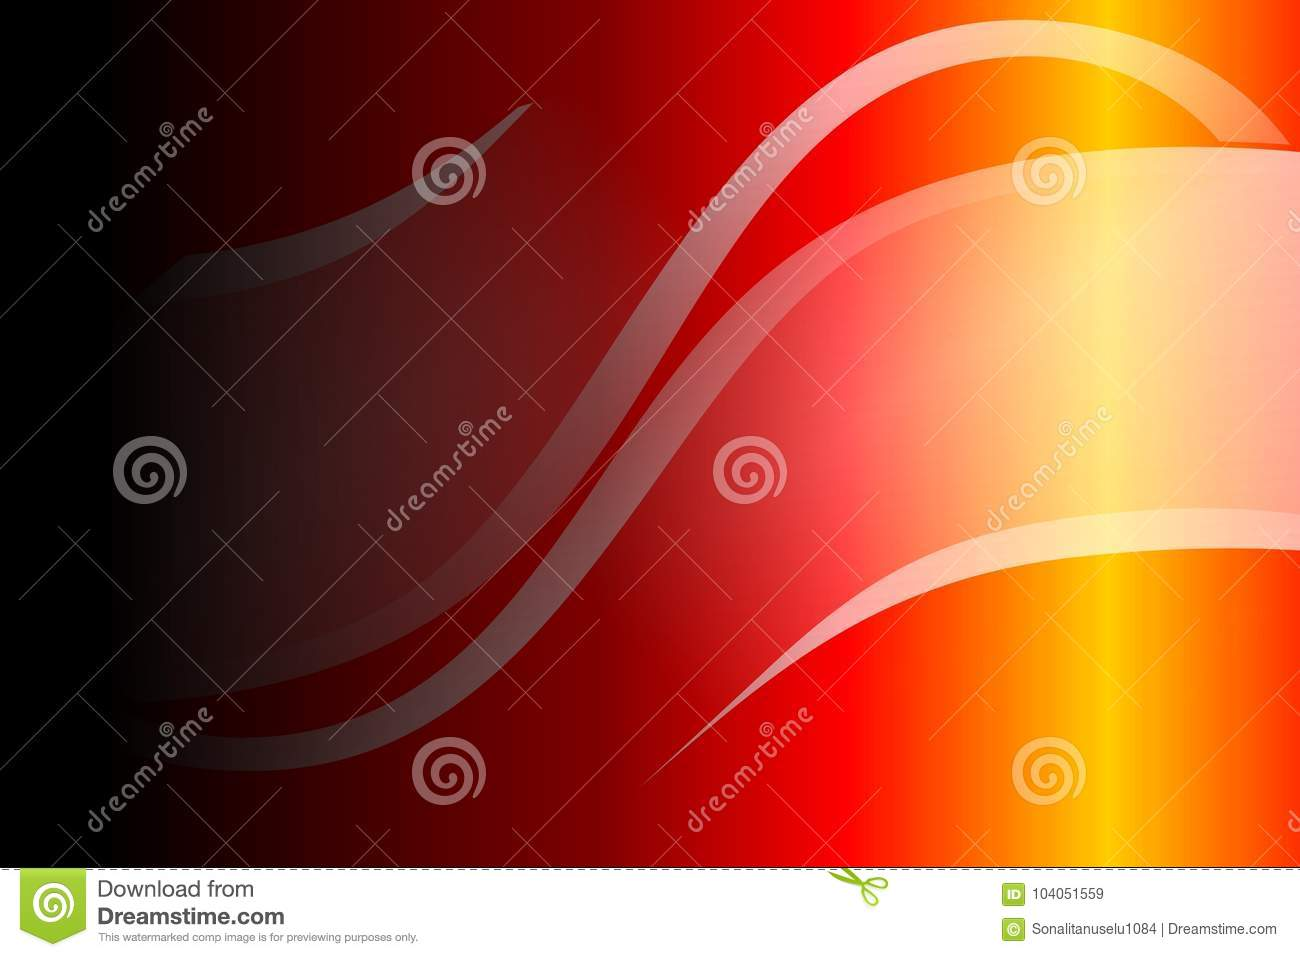 Abstract Bright Red Yellow And Black Colorful Background Vector Illustration Stock Vector Illustration Of Element Blue 104051559